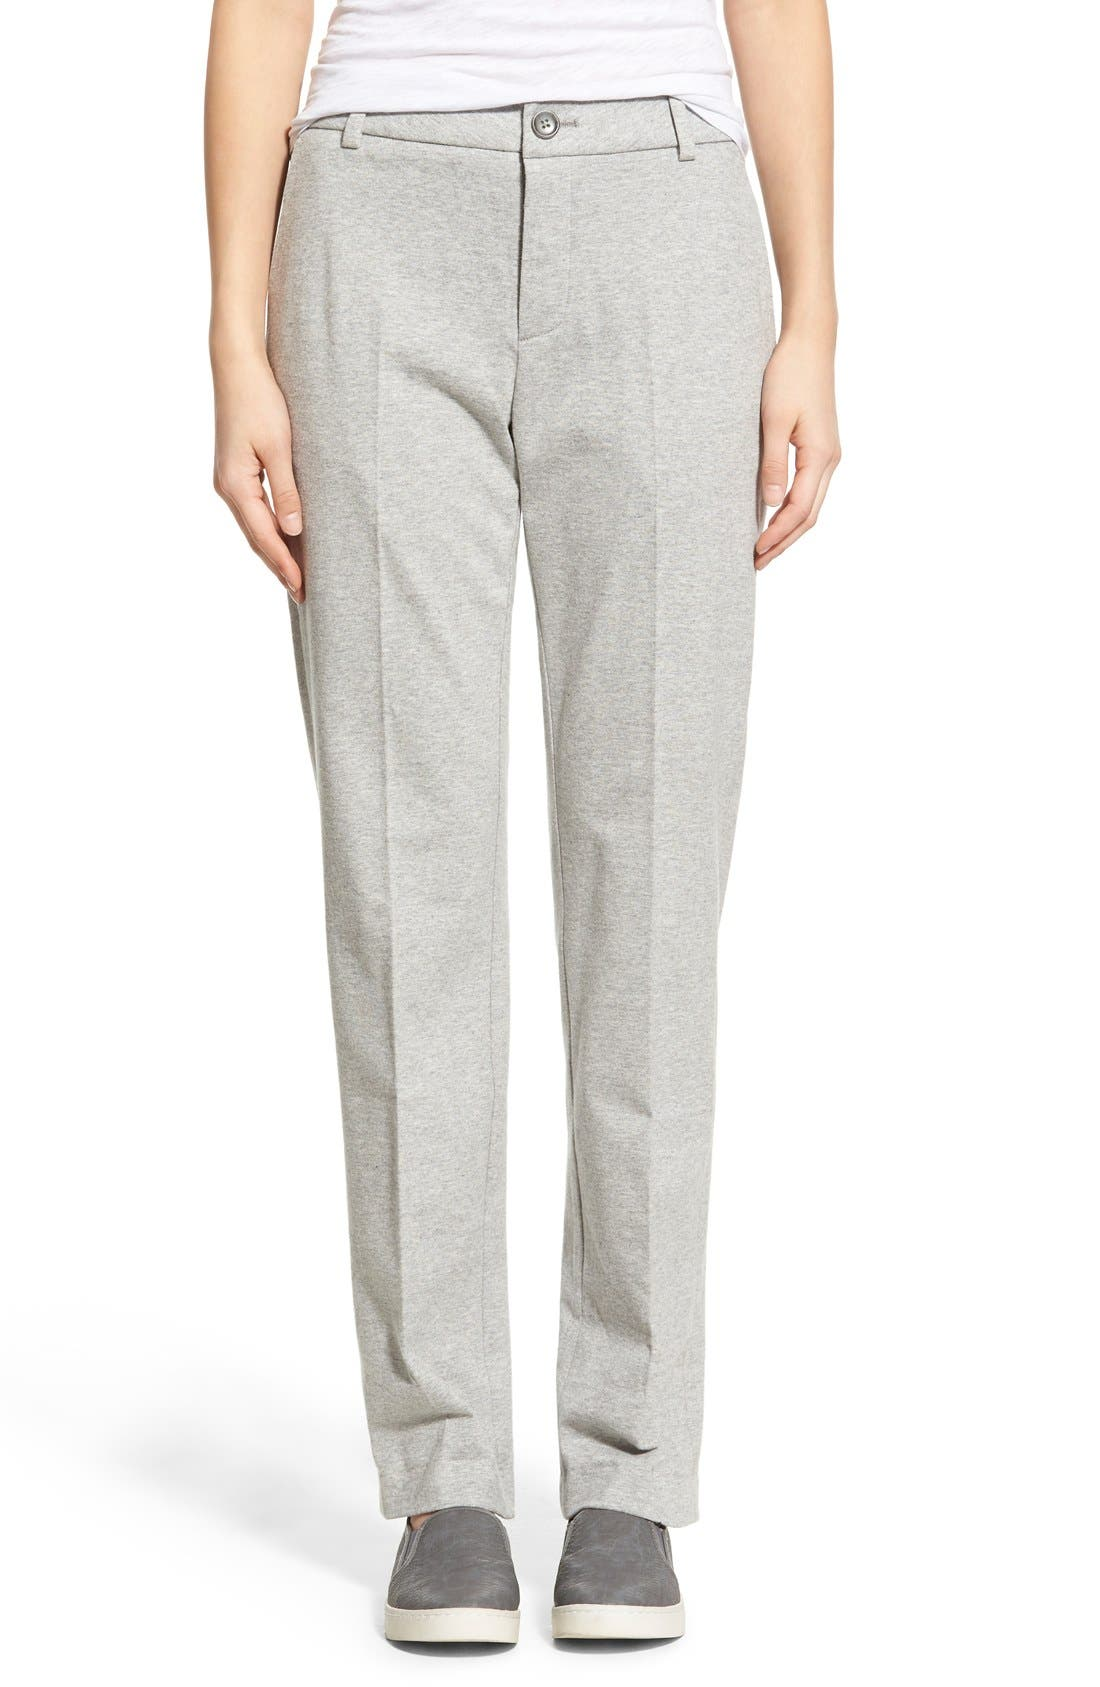 James Perse Cotton Jersey Trousers